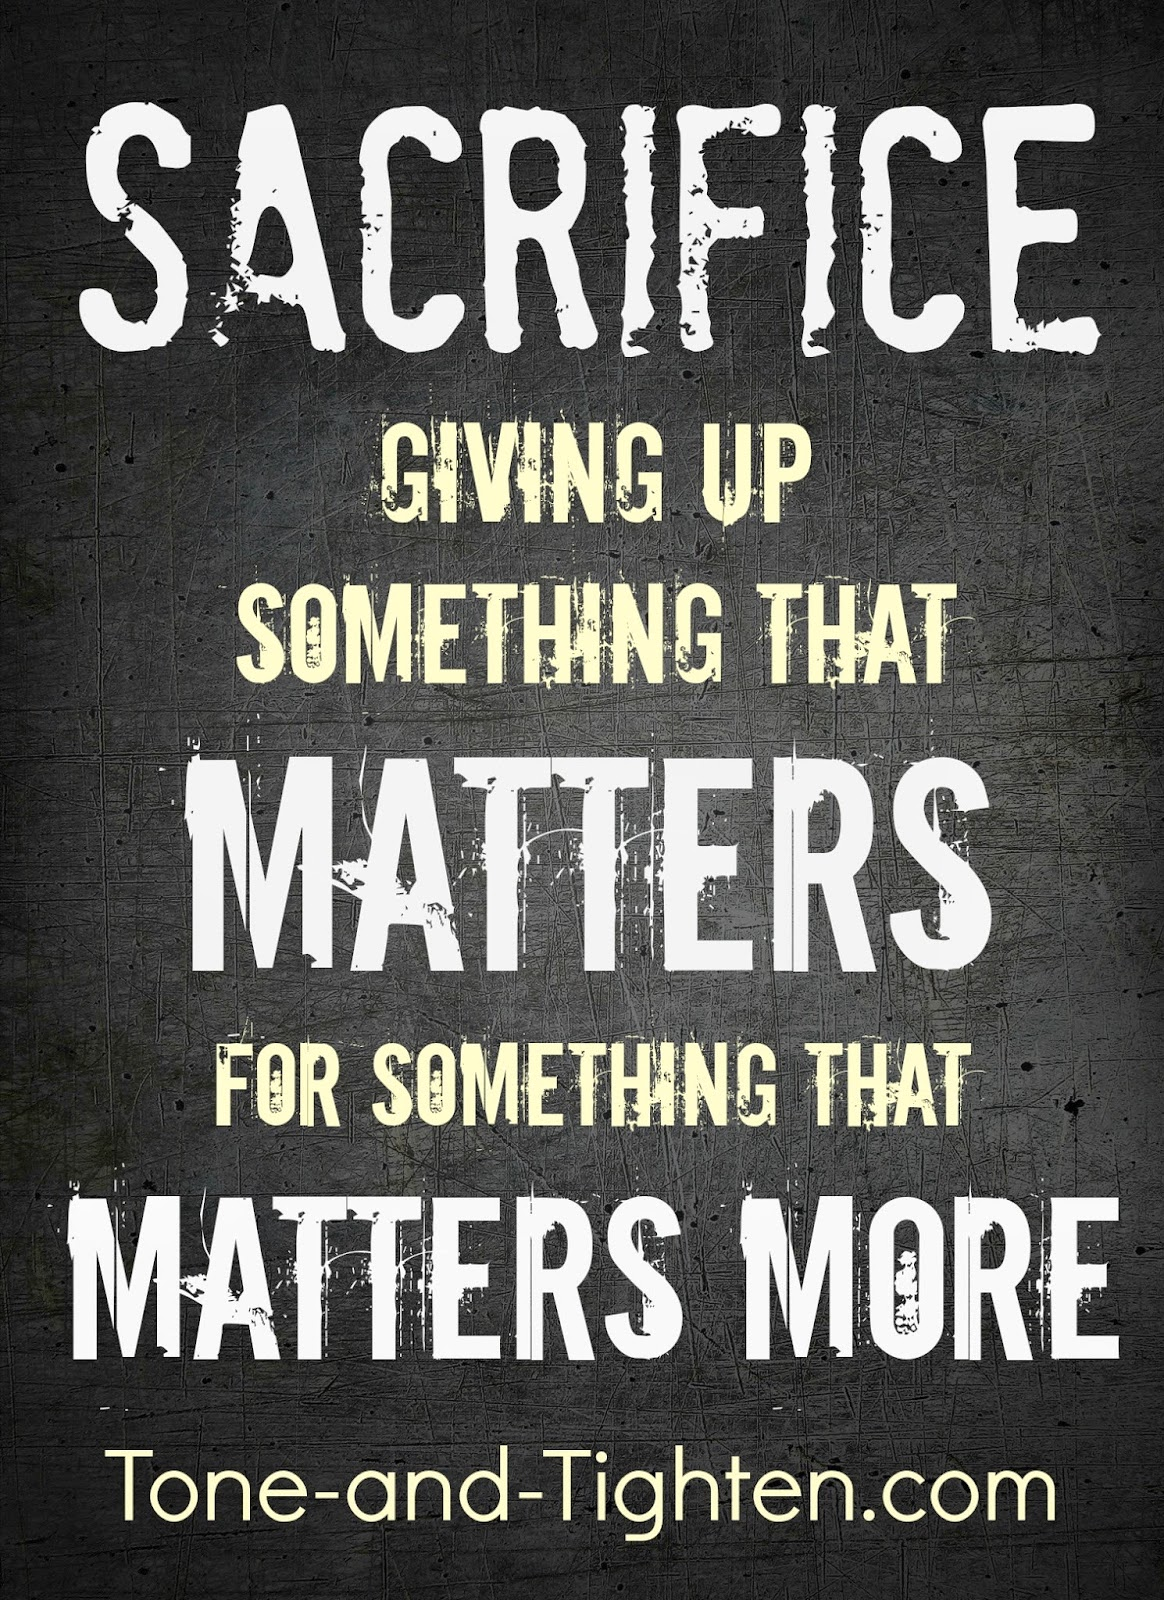 http://tone-and-tighten.com/2013/09/fitness-motivation-sacrifice.html